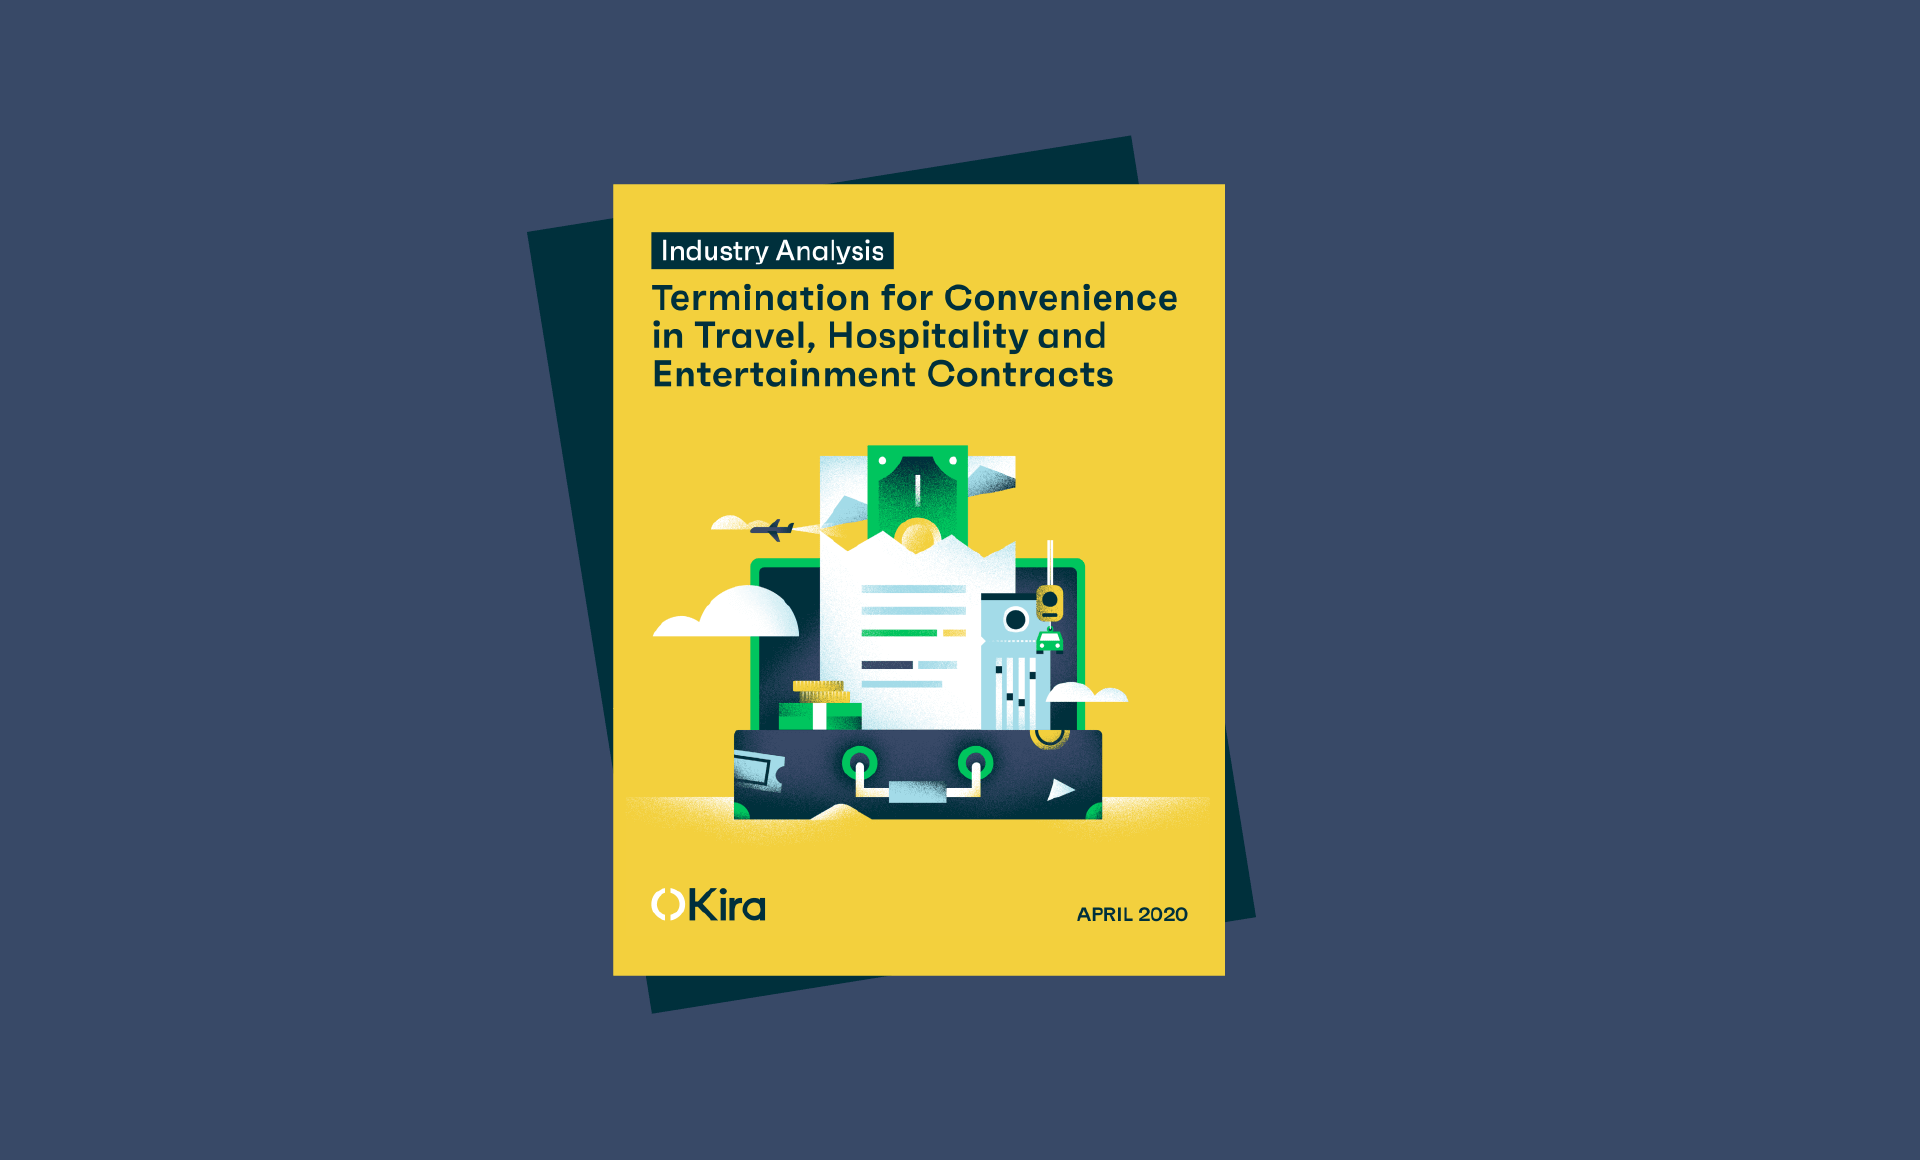 Learn more about the Industry Analysis: Termination for Convenience in Travel, Hospitality, and Entertainment Commercial Contracts